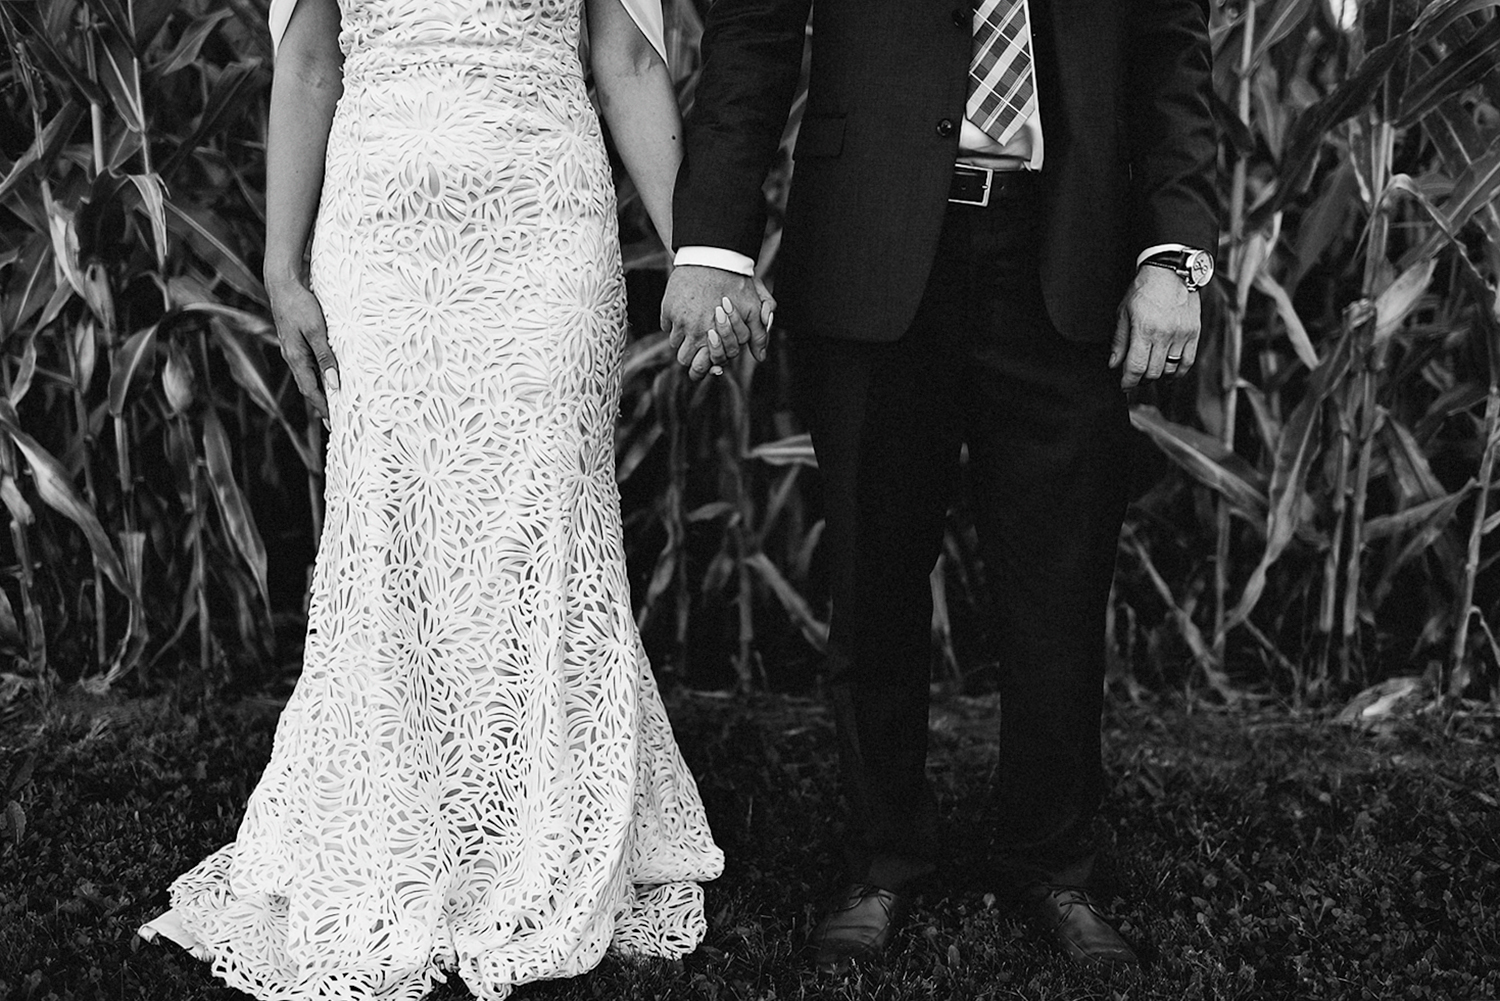 Best-Wedding-Photographers-Toronto-with-Documentary-and-photojournalistic-style-3b-Photography-Intimate-Wedding-at-Dowswell-Barn-Wedding-Photography-Bride-and-groom-intimate-wedding-couple-cornfield-details.jpg